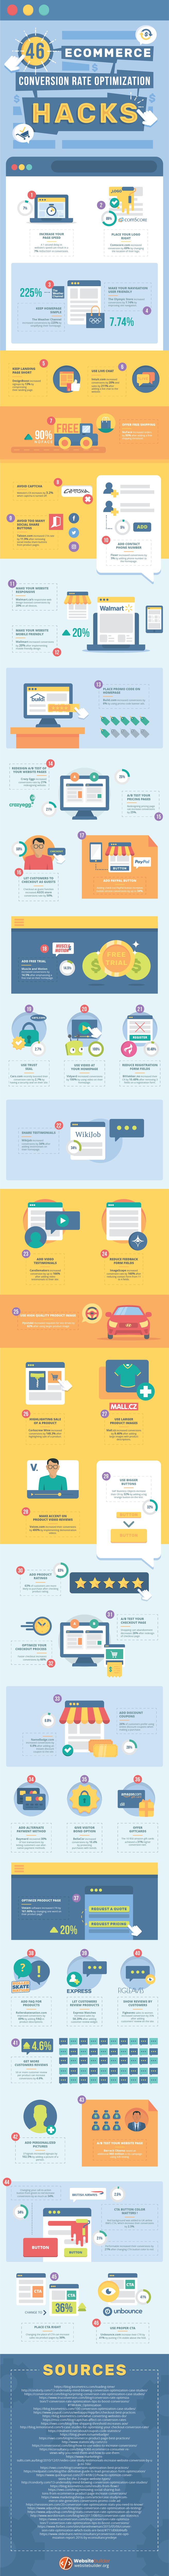 Benefit from Conversion Rate Optimization with these 46 simple, but very effective hacks for increasing your conversion rates. (#INFOGRAPHIC) #CRO